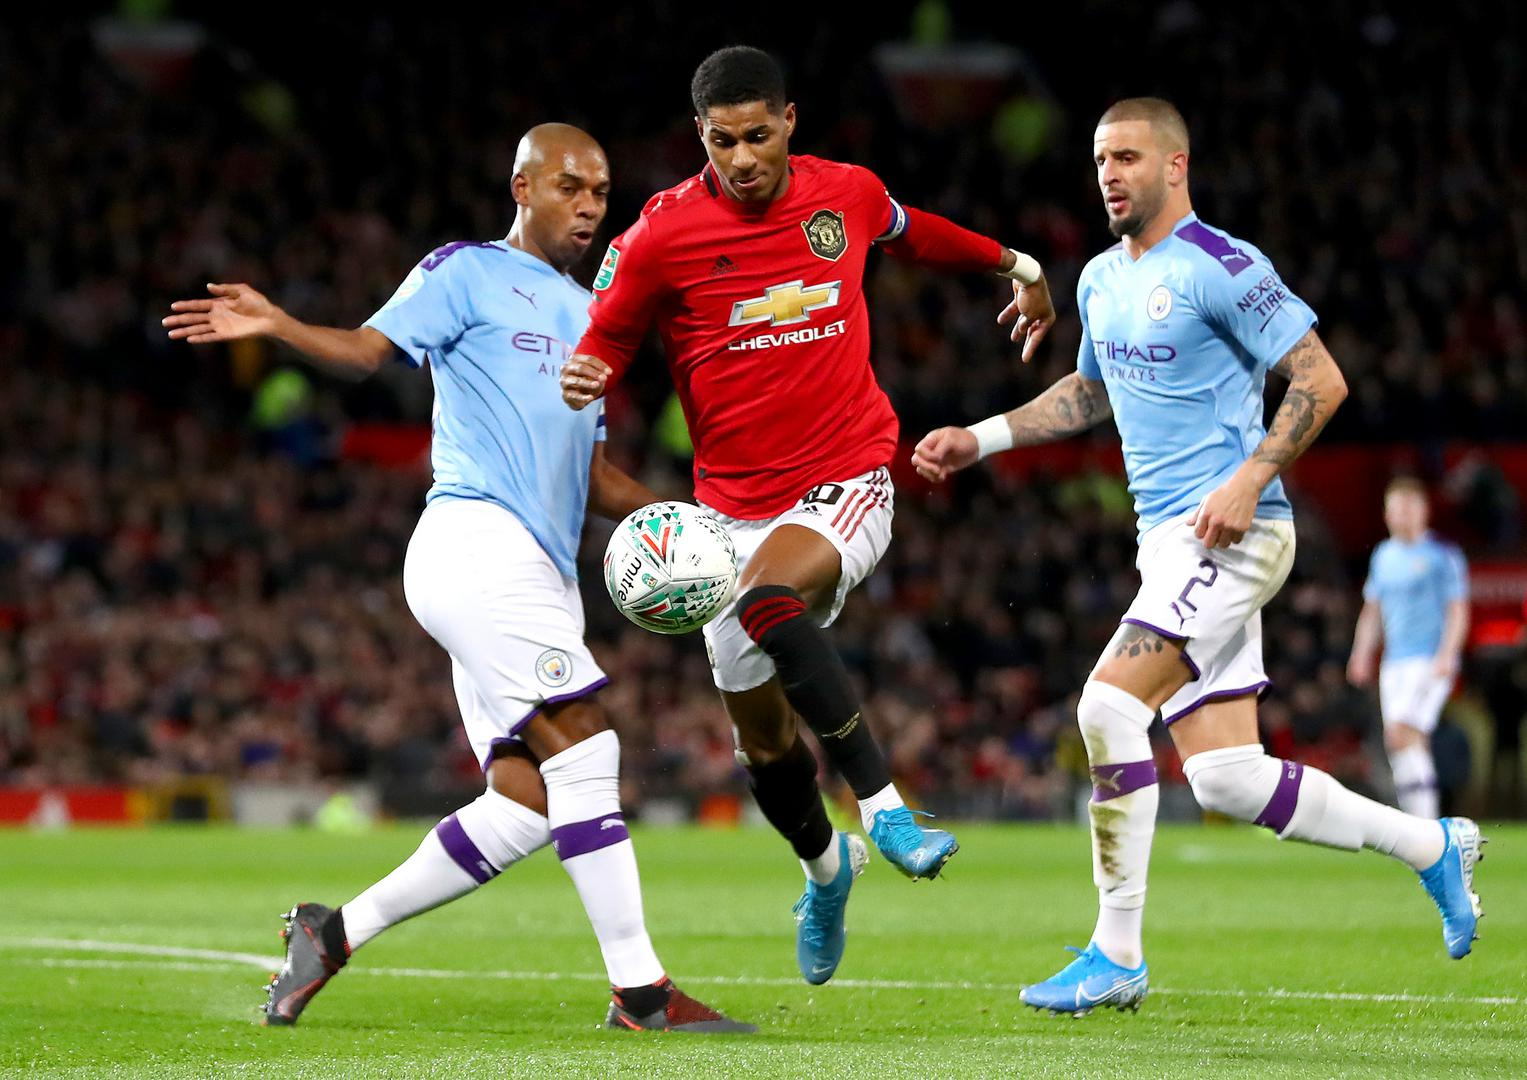 Marcus Rashford runs between two Manchester City defenders.